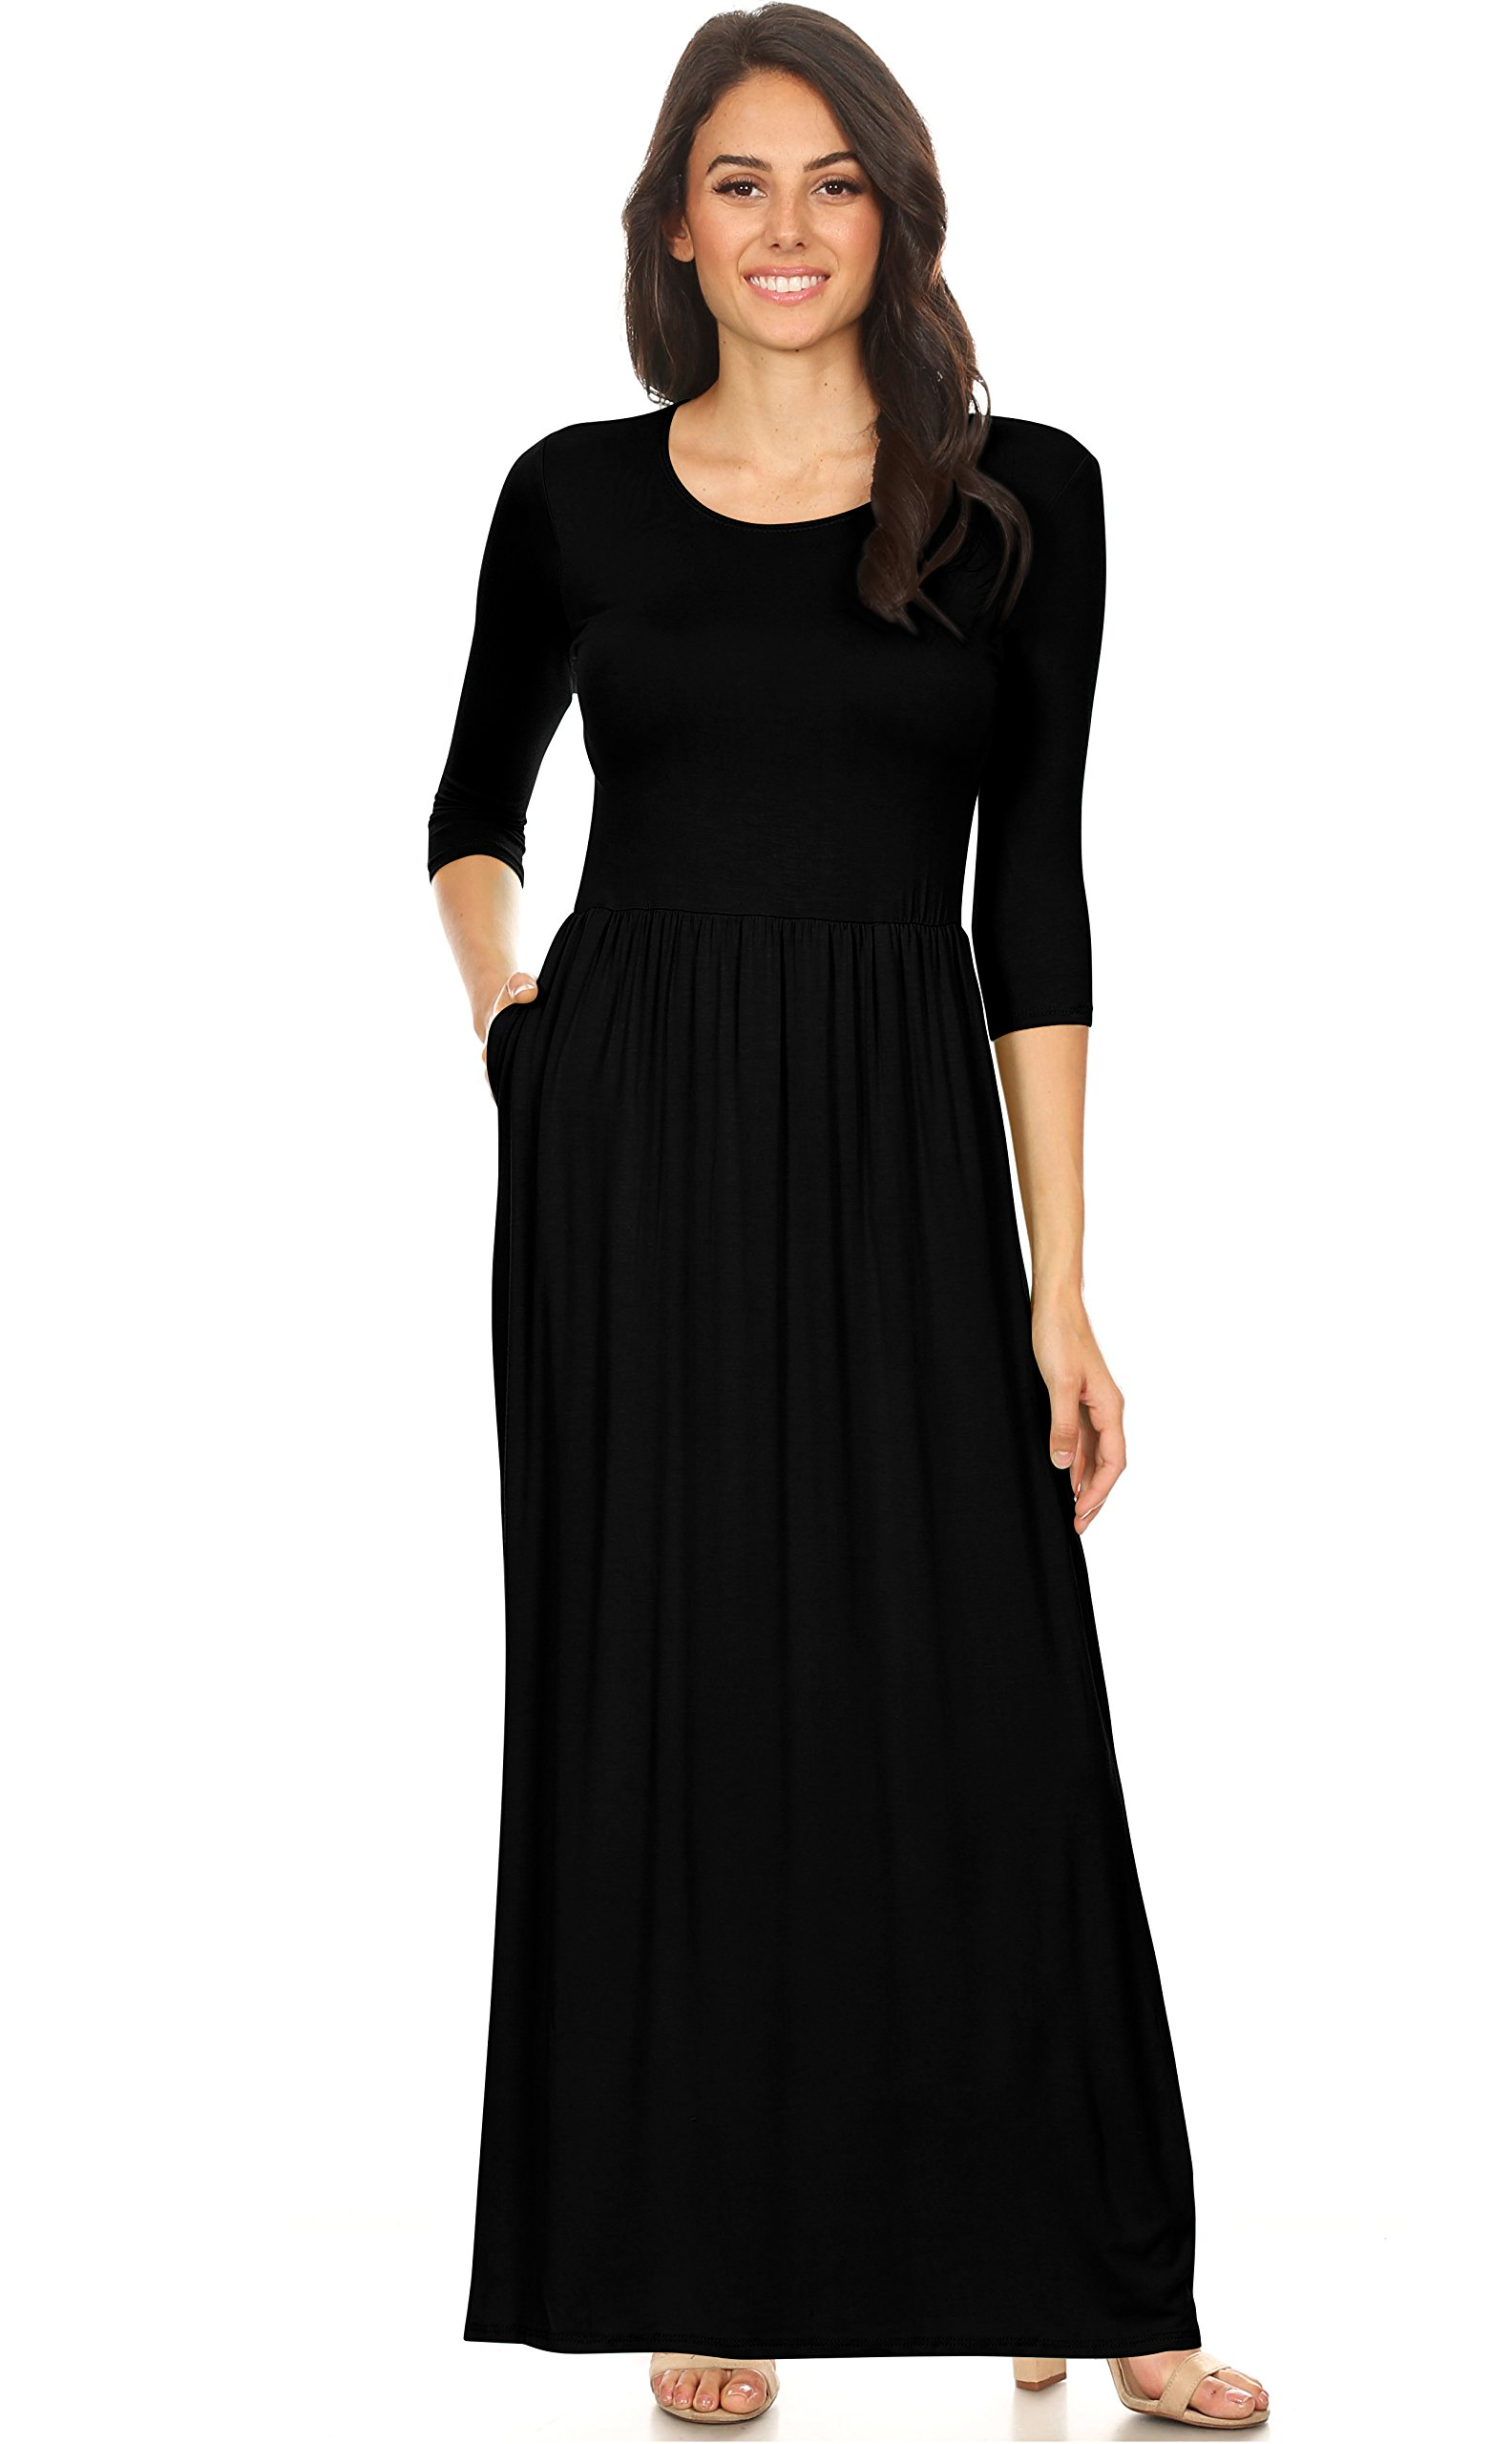 Simlu Womens Long Rayon Maxi Dress with Pockets, Scoop Neck and Empire Elastic Waist